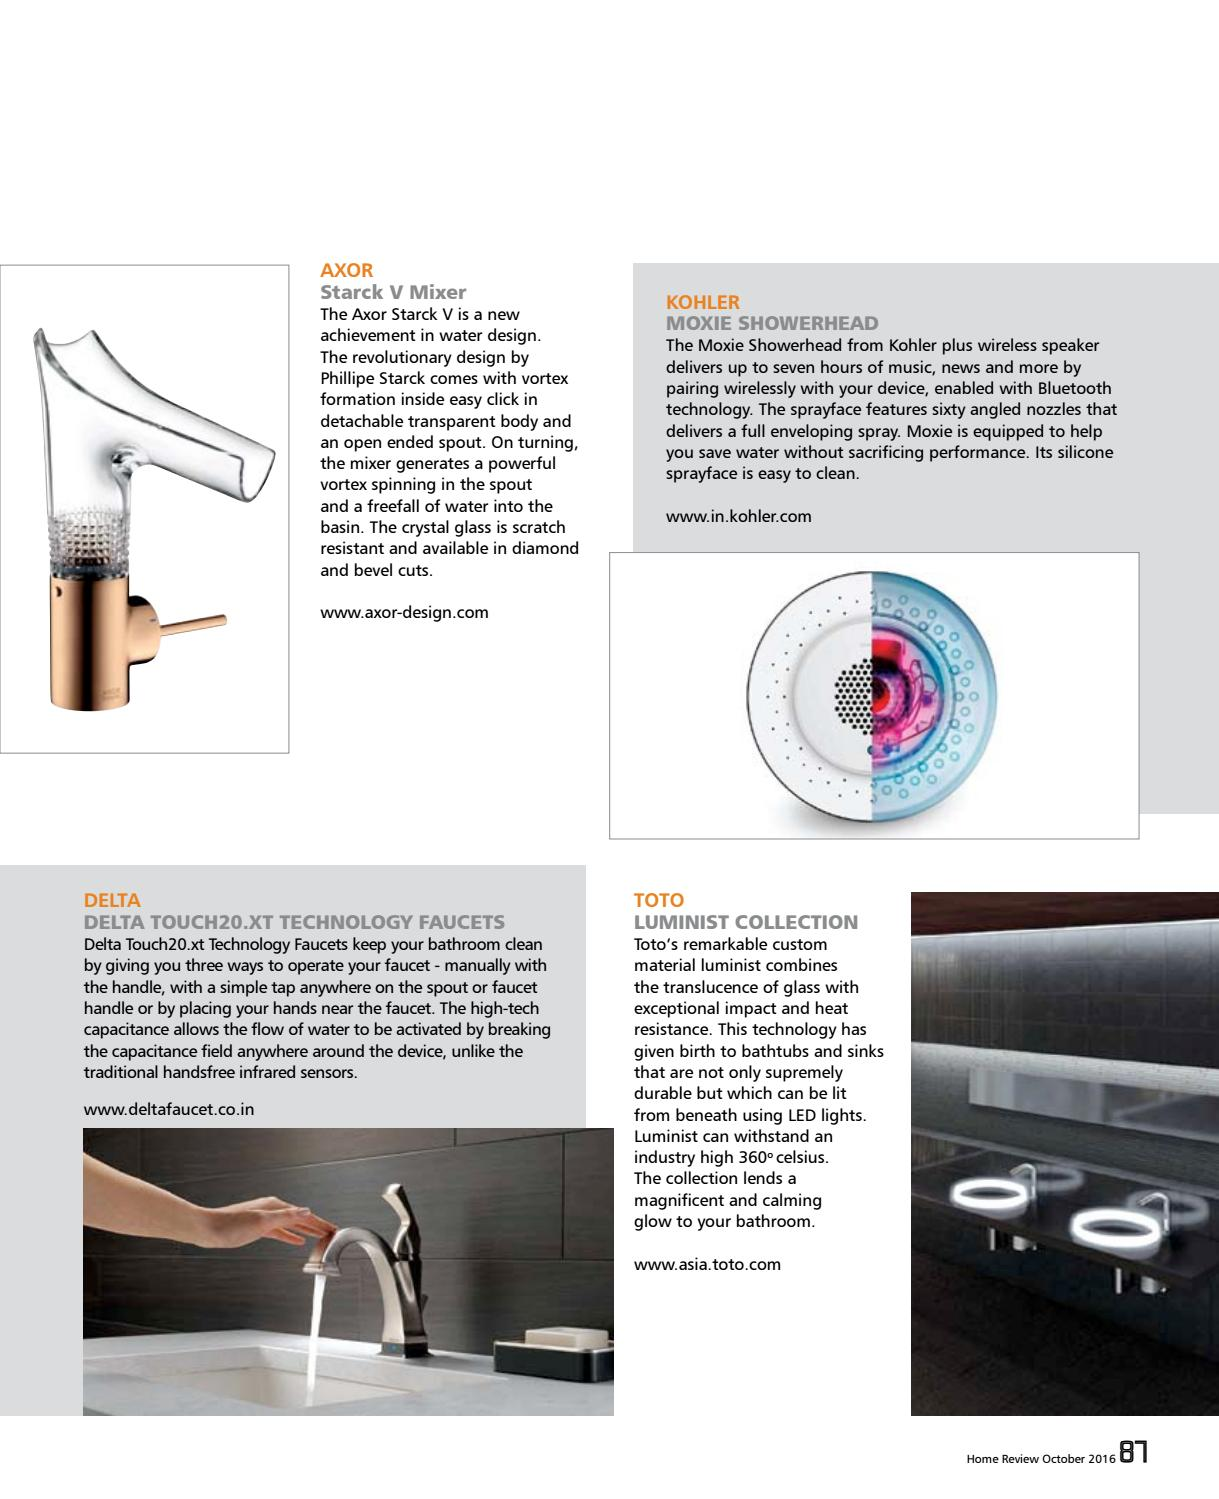 Axor Starck V Faucet Home Review October 2016 By Home Review Issuu